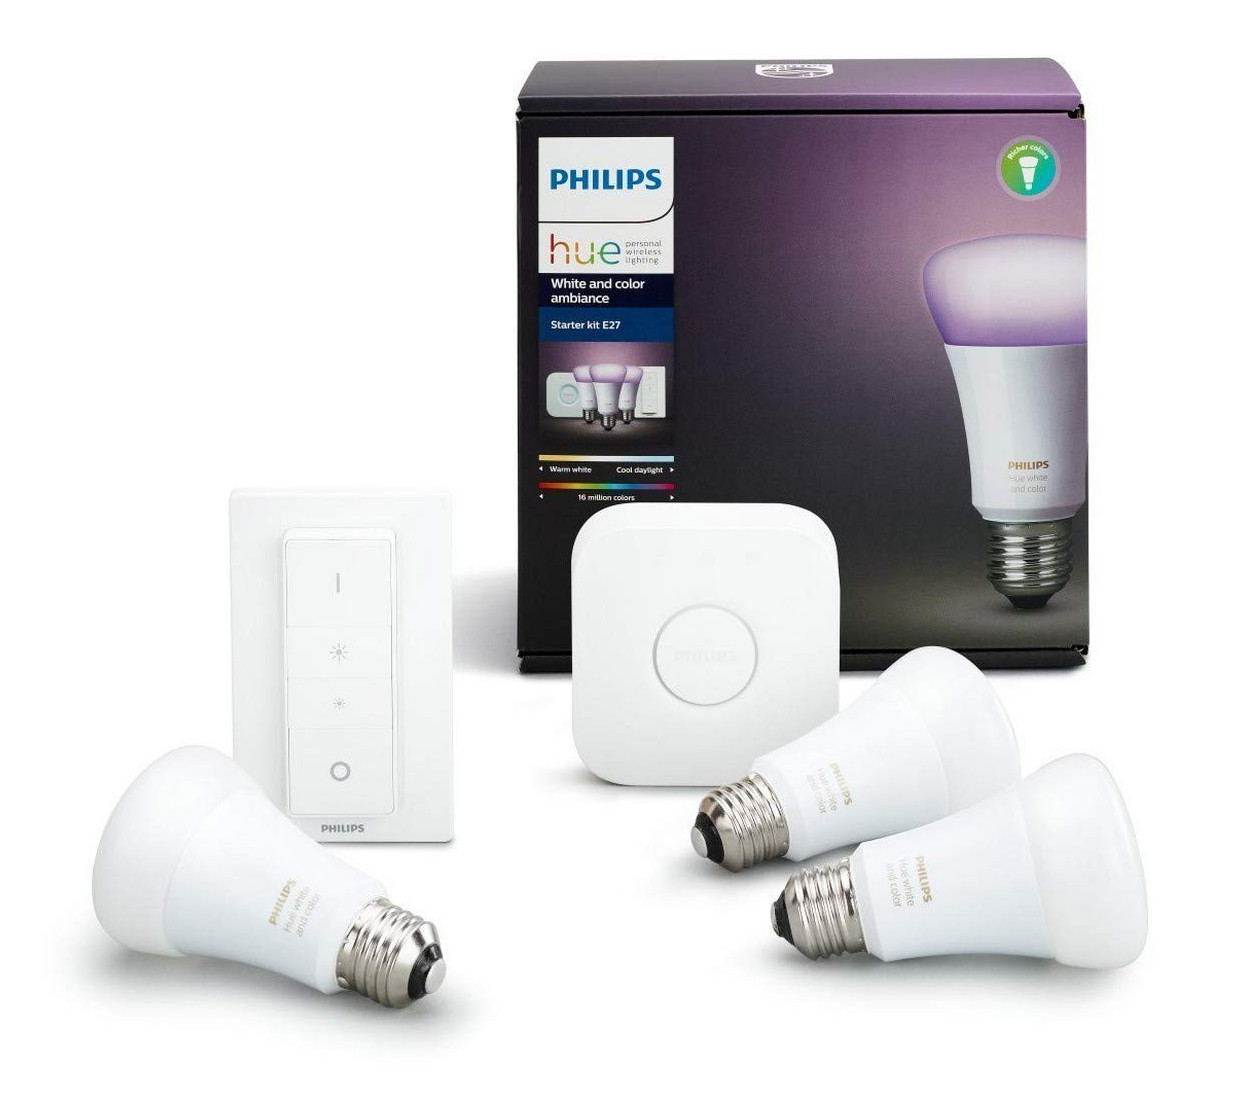 Image 1 : [Promo] Le kit Philips Hue White and Color Ambiance à 105 €